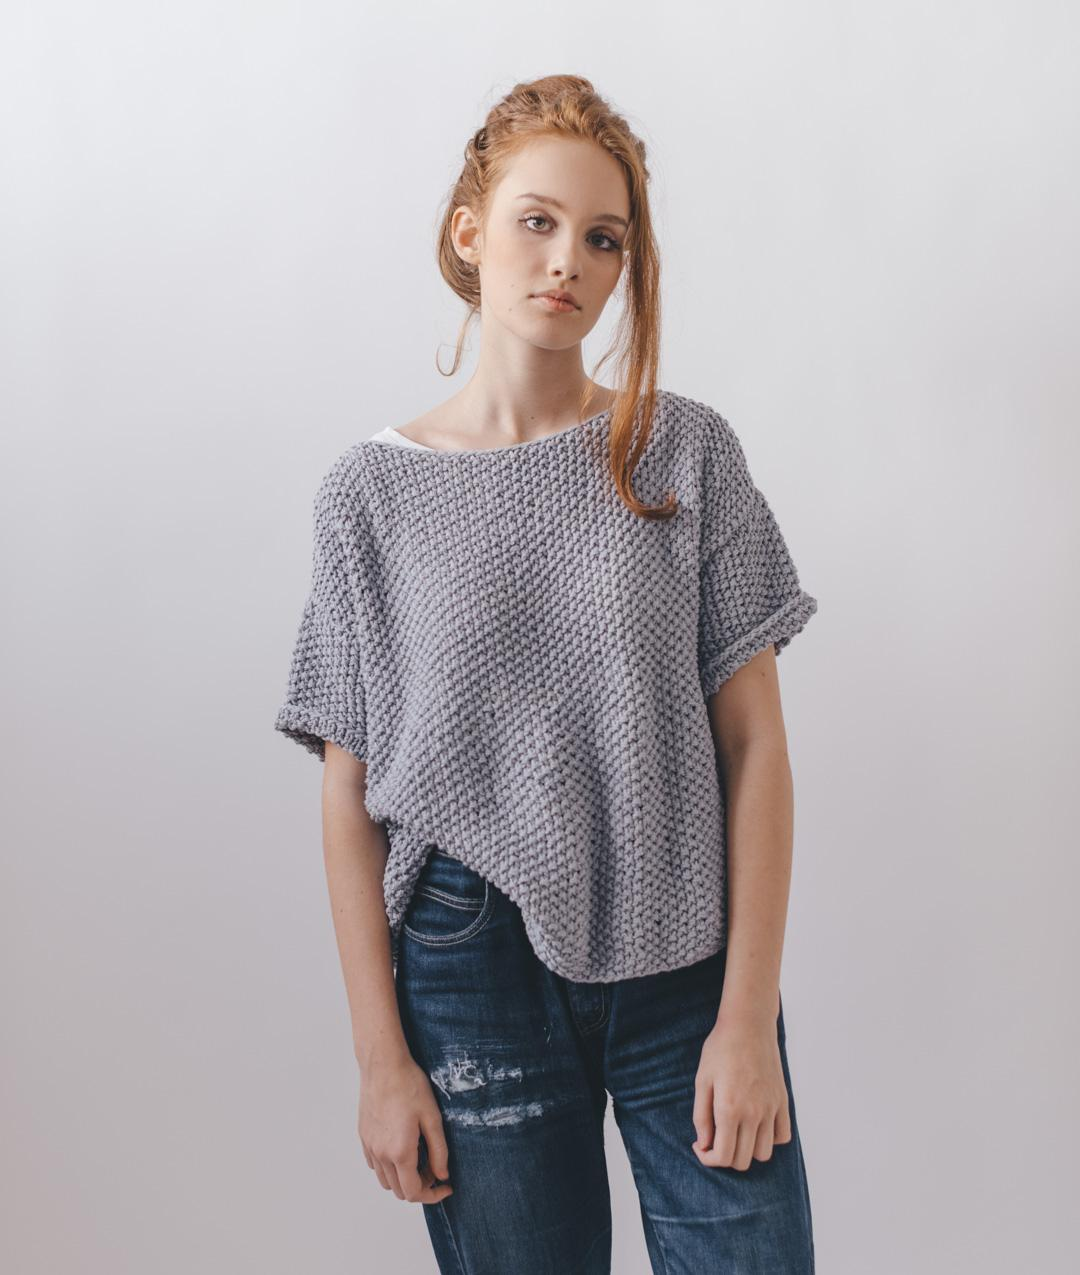 Sweaters and Tops - Cotton - Carry Sweater - 1